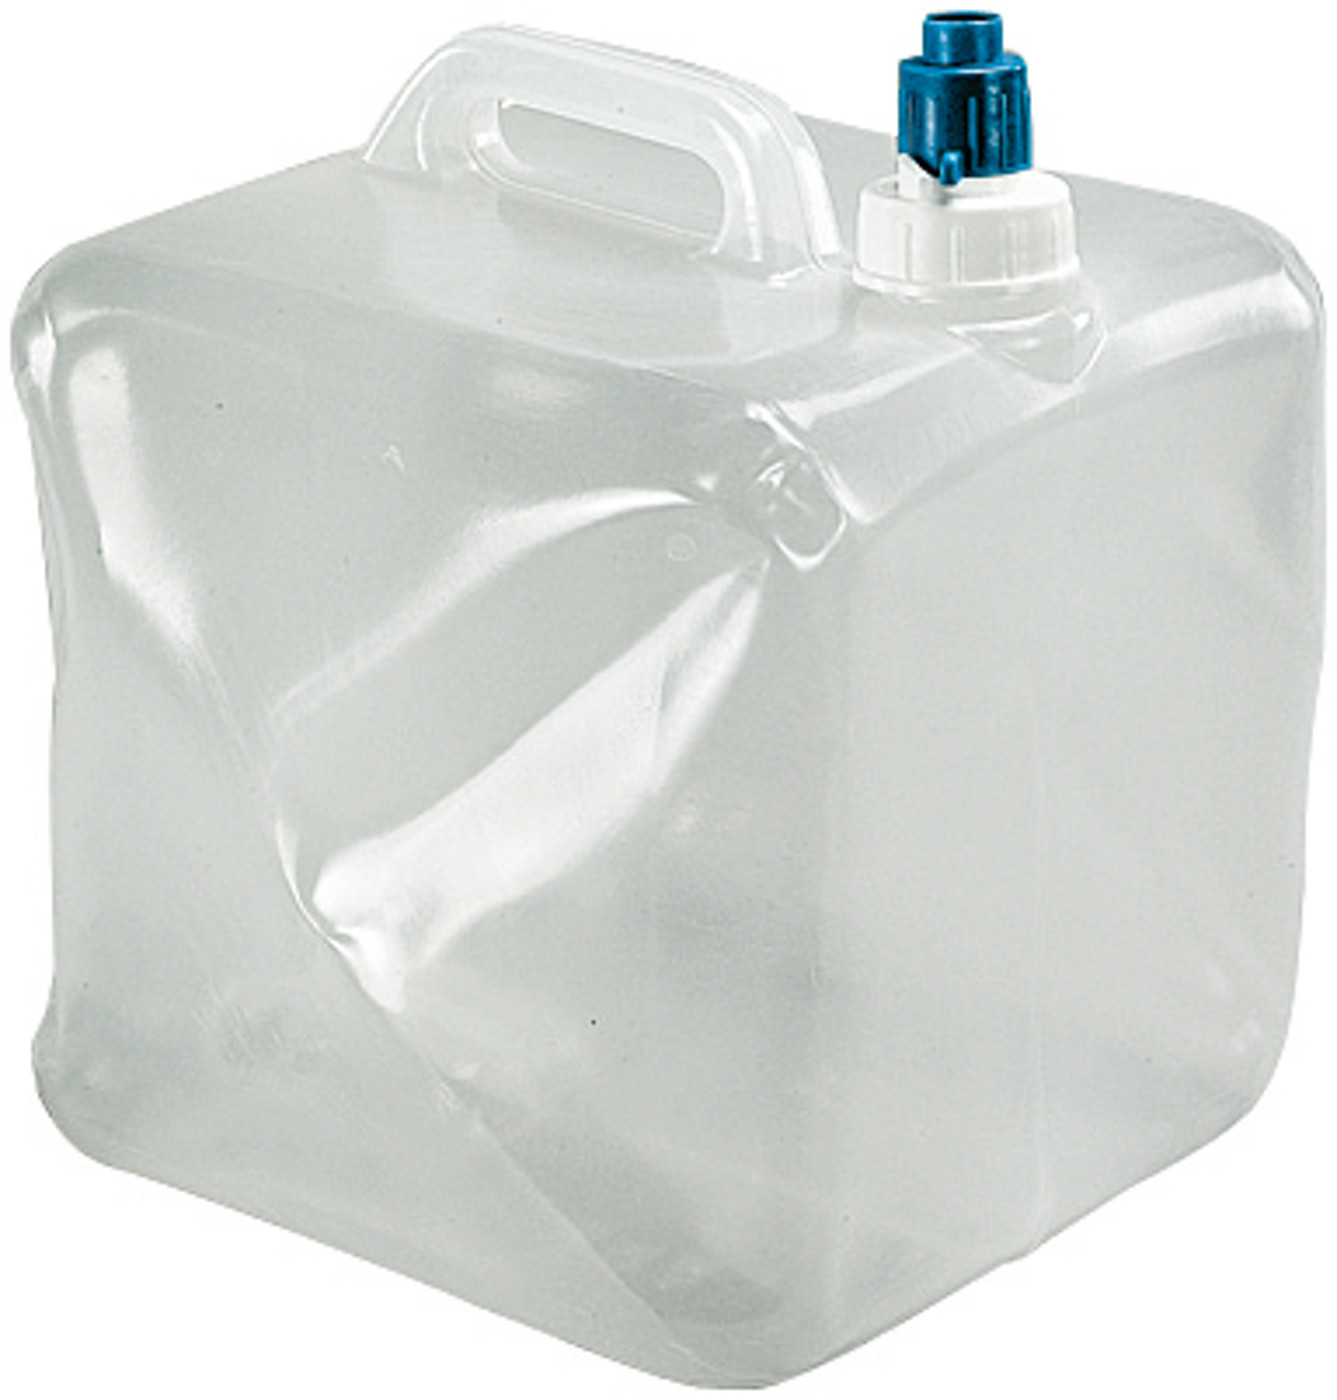 HIGH COLORADO COLLAPSIBLE WATER CARRIER